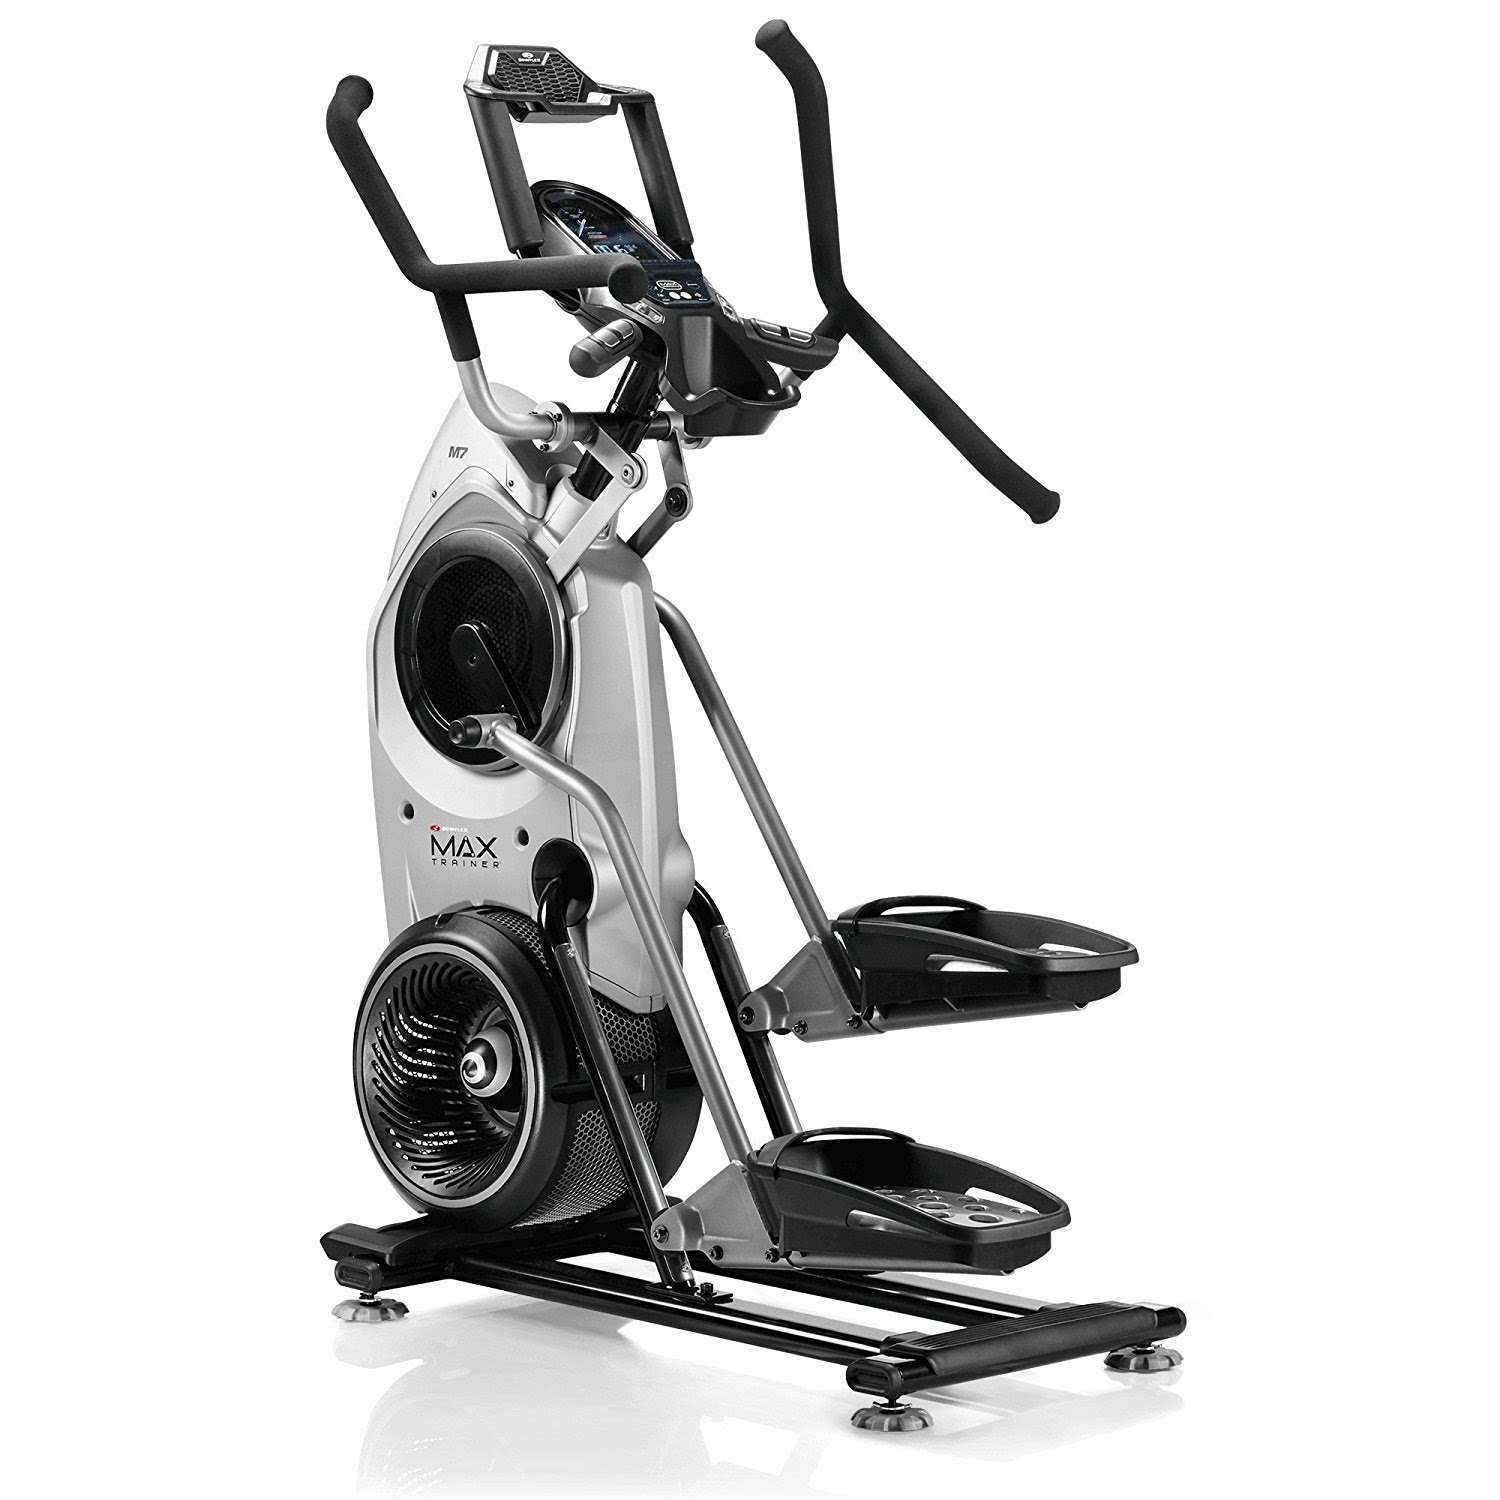 home gym zone comparing bowflex max trainer m7 versus m5 cardio machine what 39 s the difference. Black Bedroom Furniture Sets. Home Design Ideas